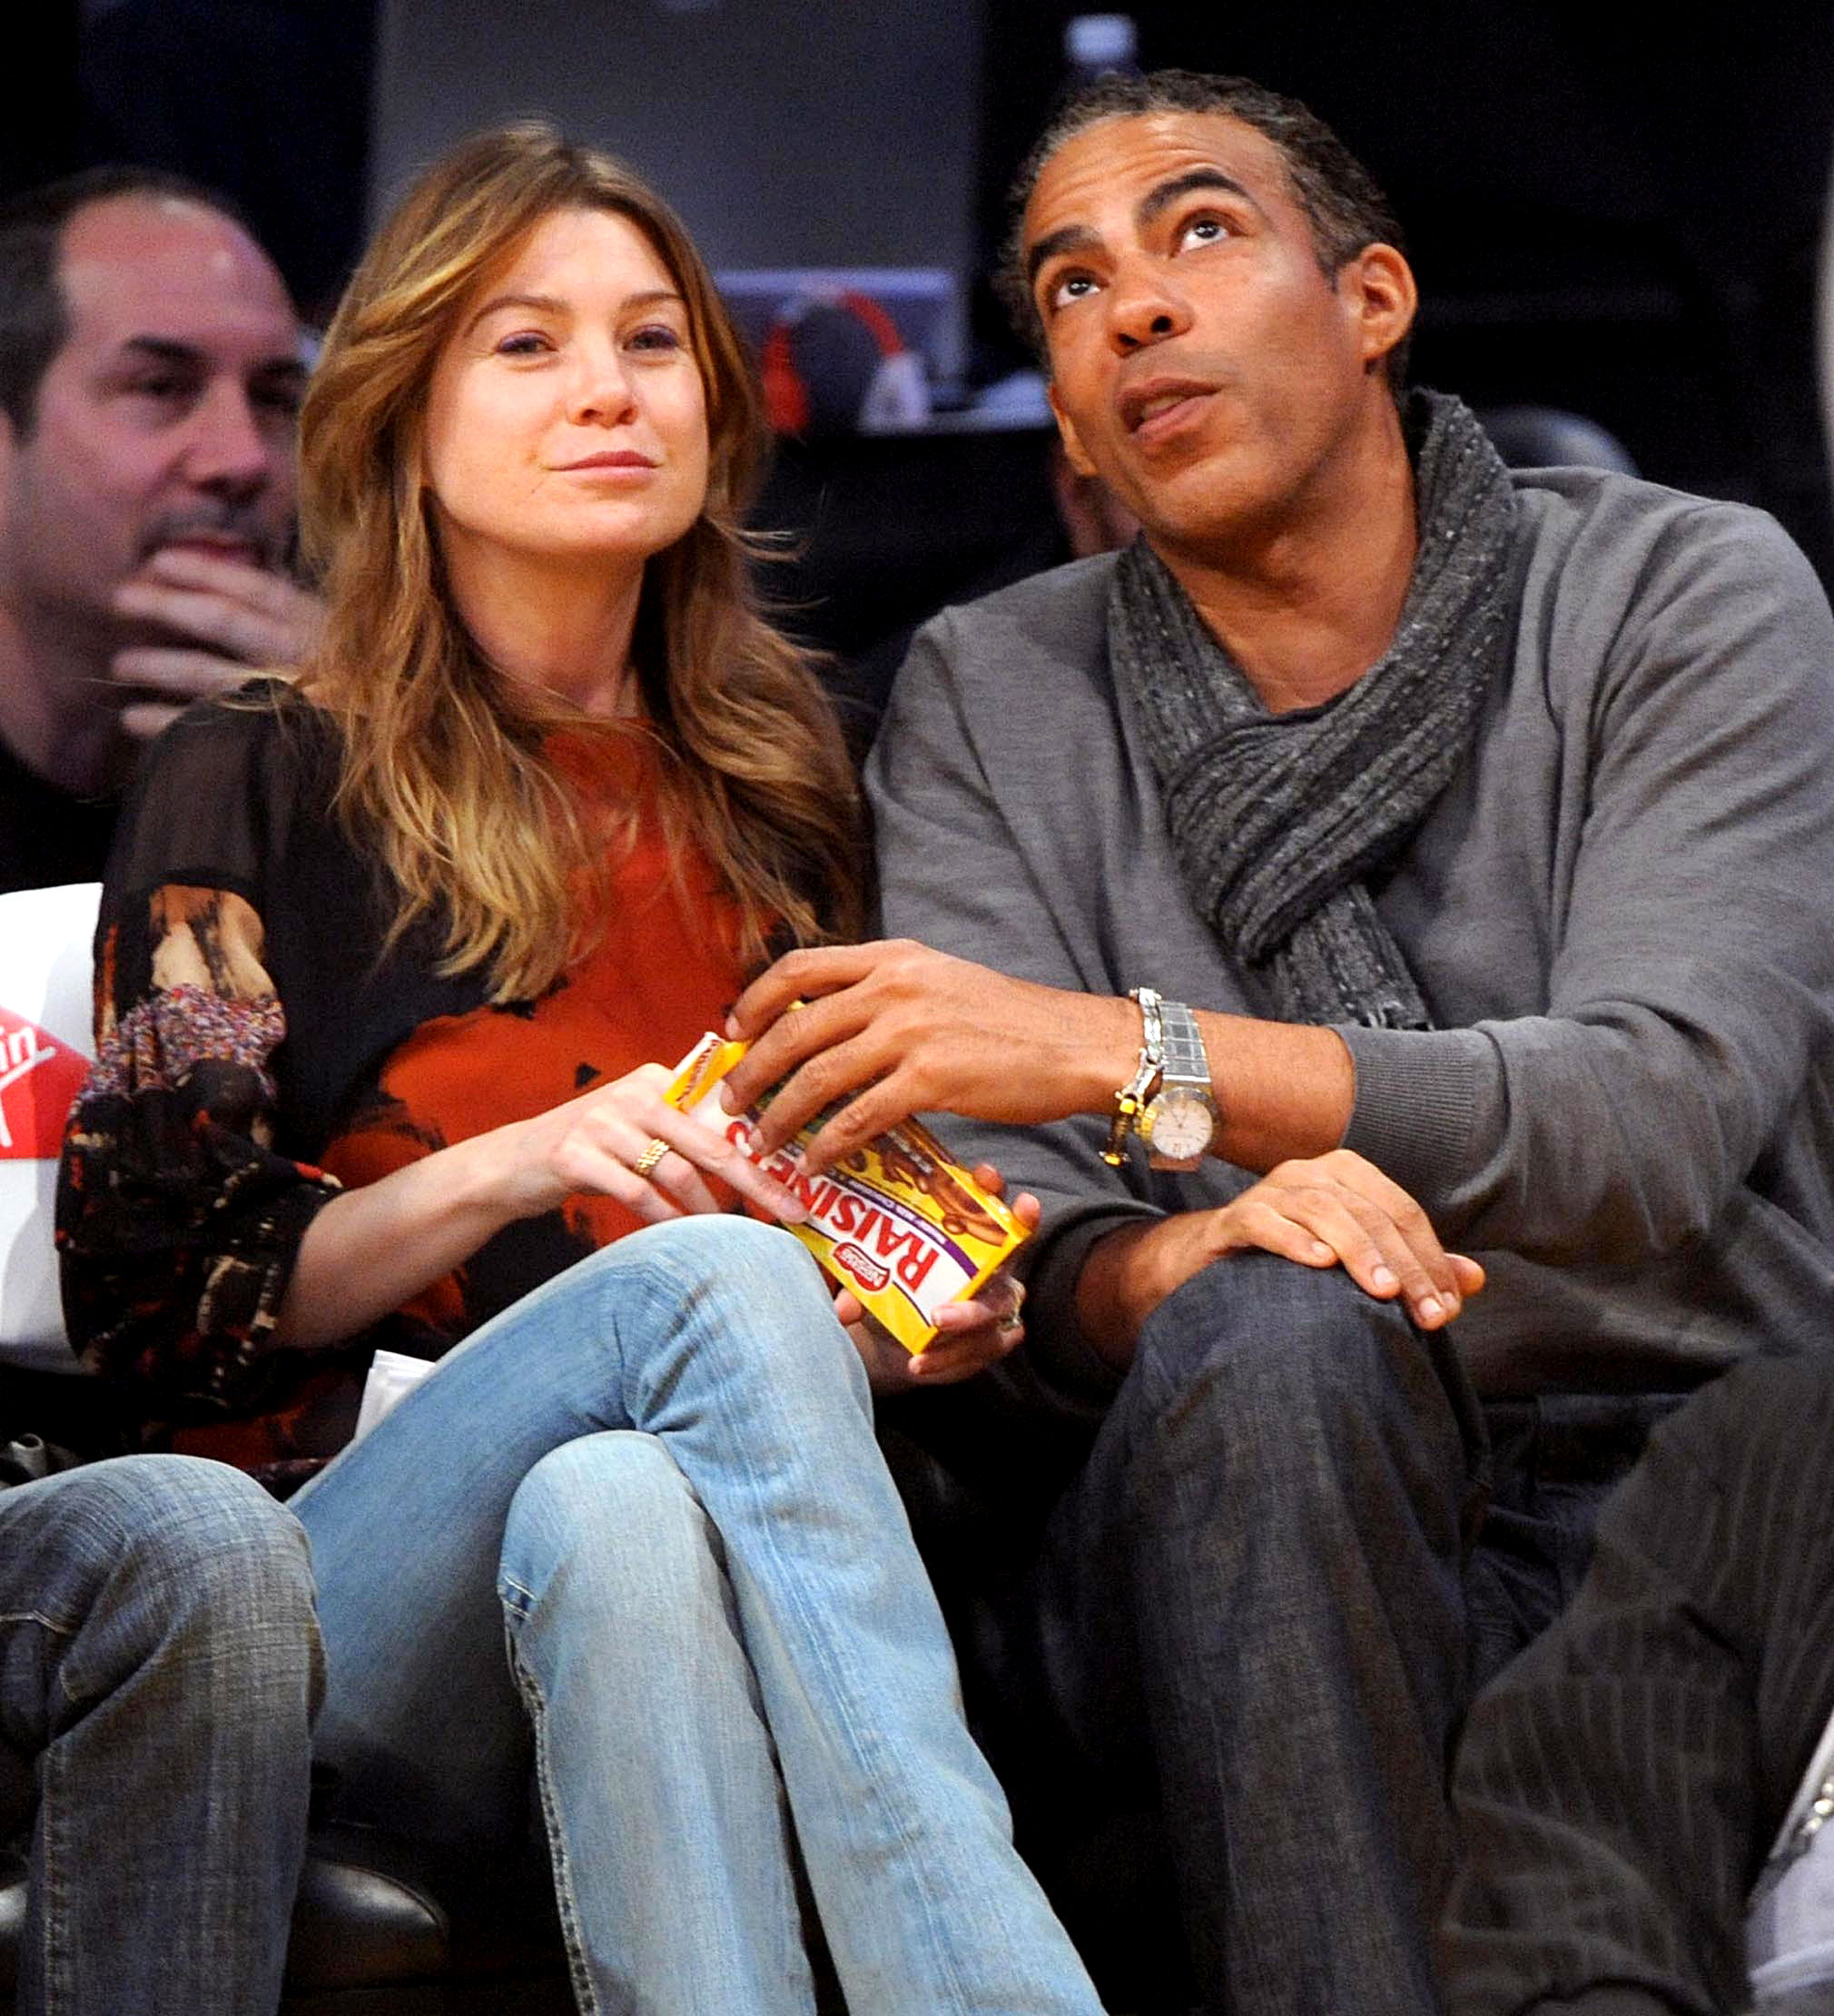 Celebs Eating Courtside - The husband and wife team managed to share a box of Rasinettes without taking their eyes off the game between the Los Angeles Lakers and the Miami Heat at the Staples Center in Los Angeles on January 11, 2009.